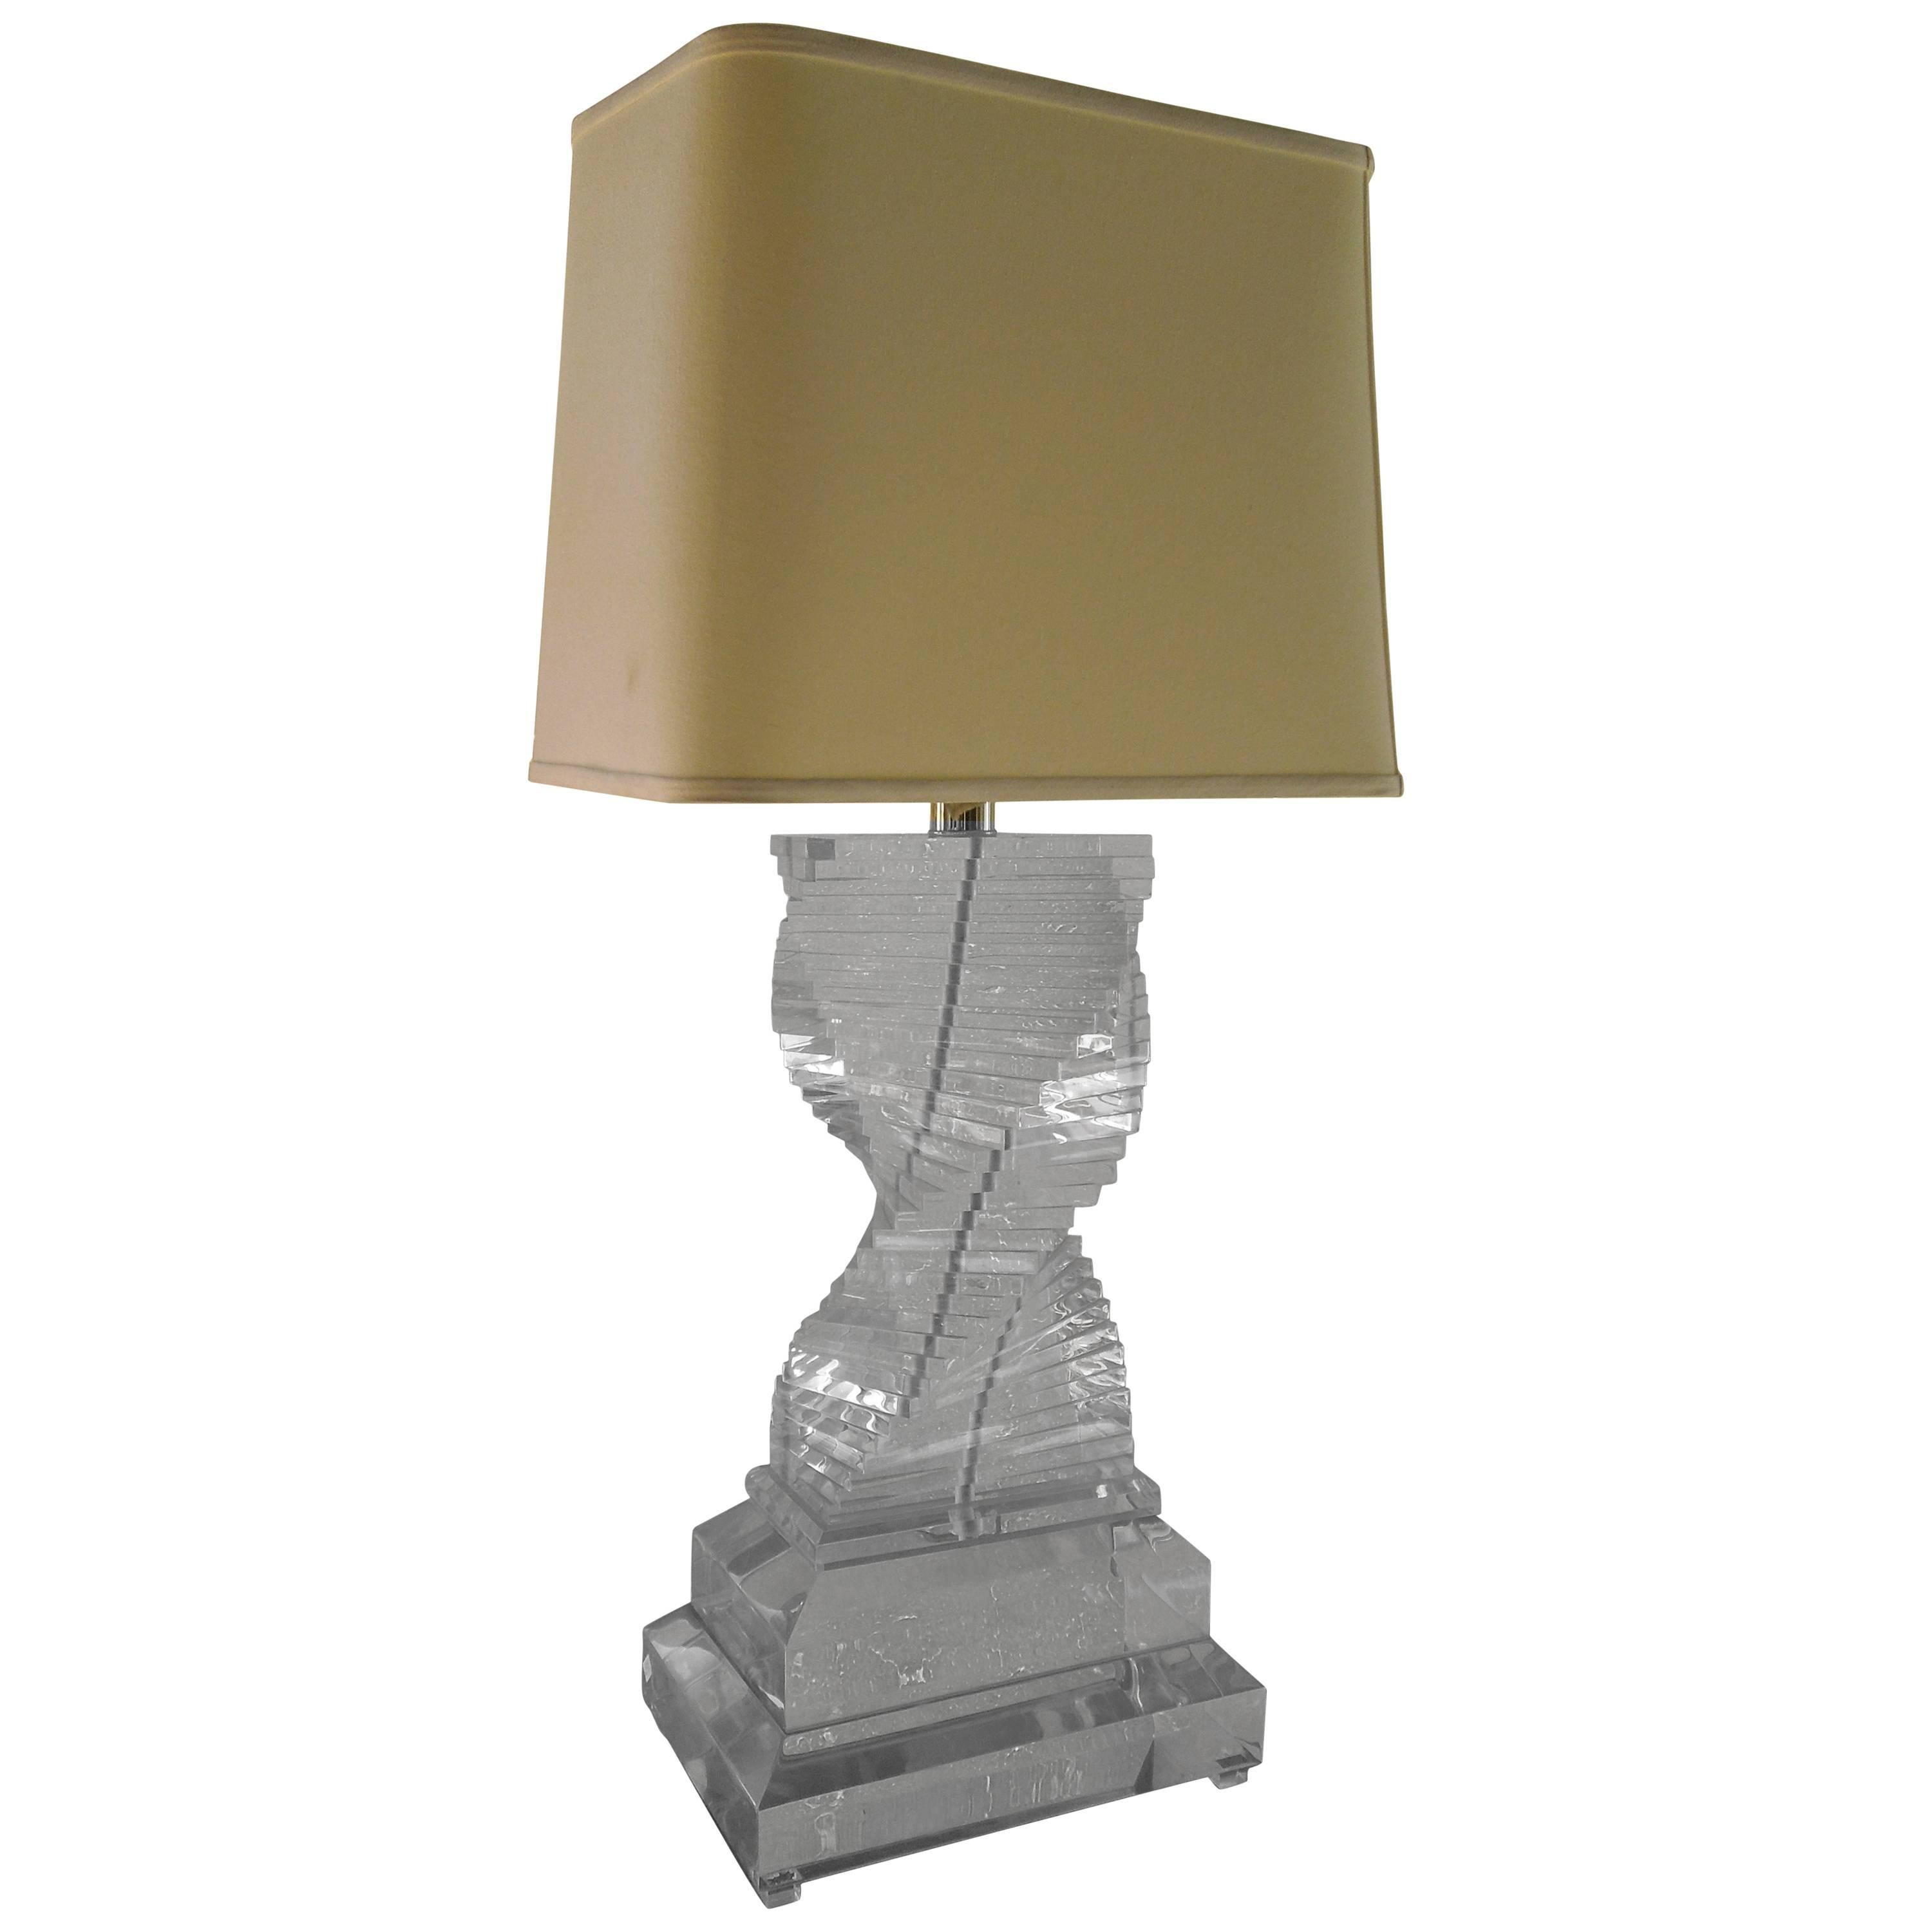 Monumental 1970s Stacked Lucite Table Lamp